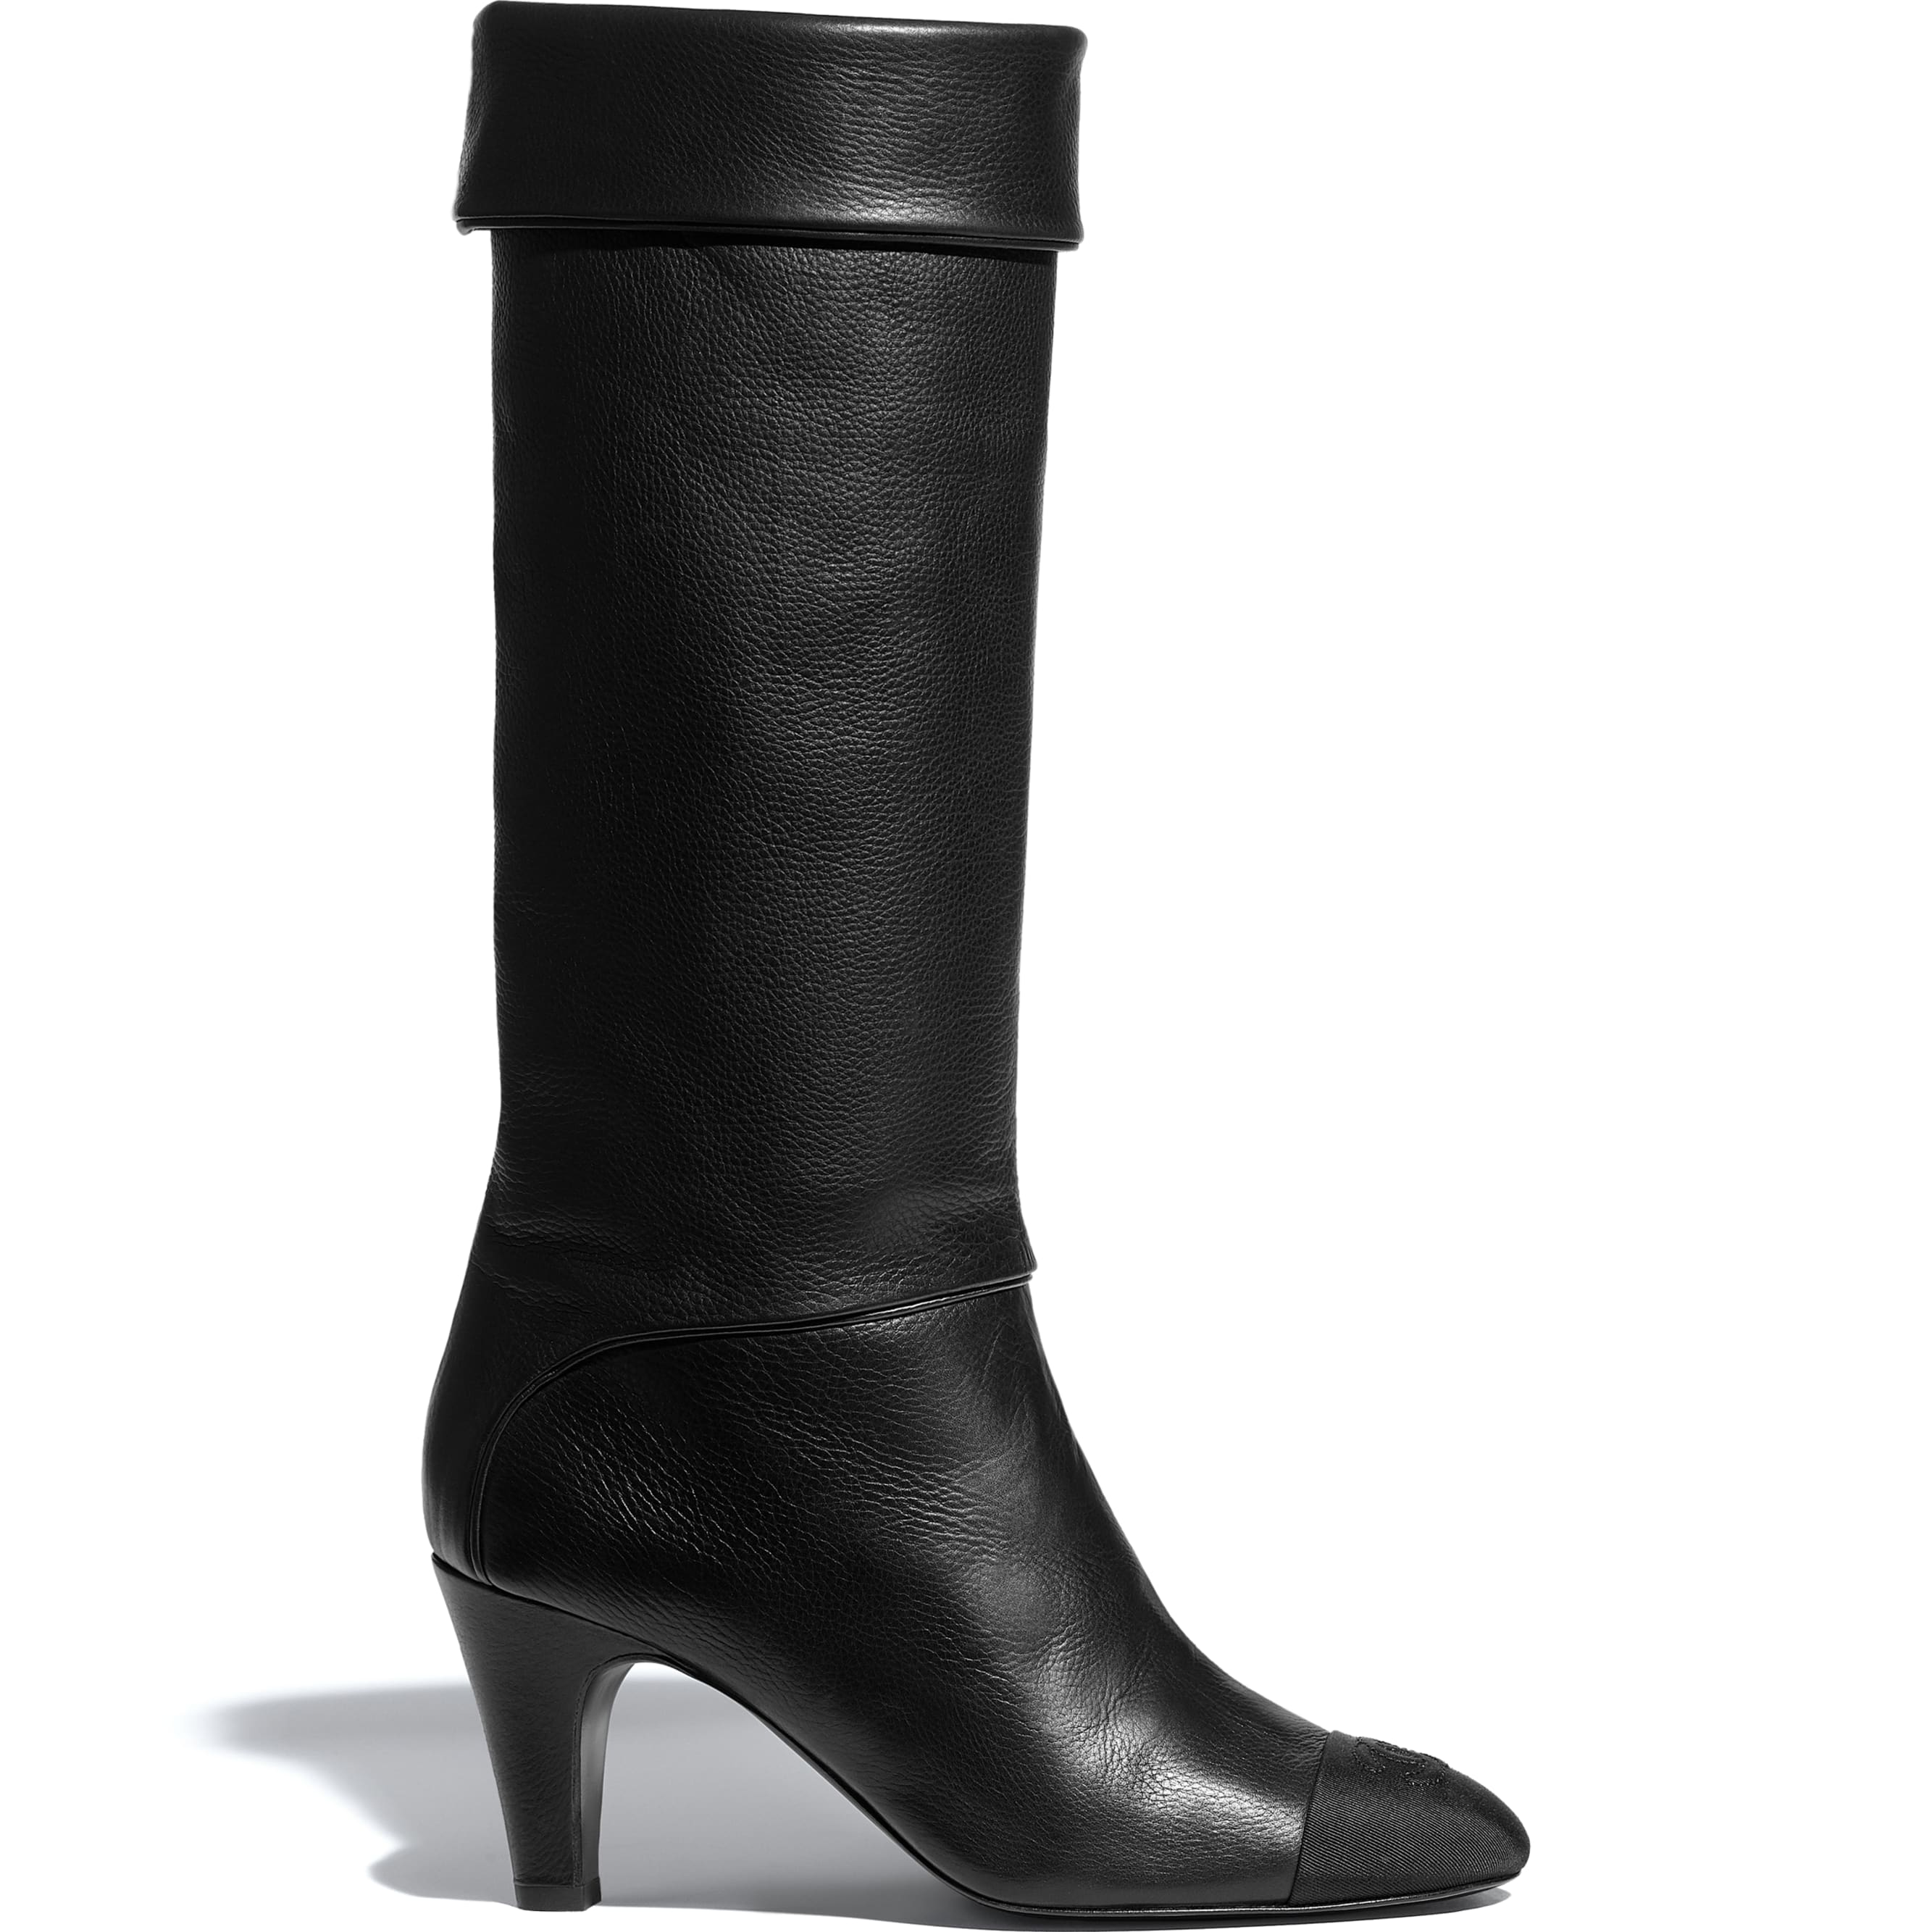 High Boots - Black - Calfskin & Grosgrain - CHANEL - Default view - see standard sized version